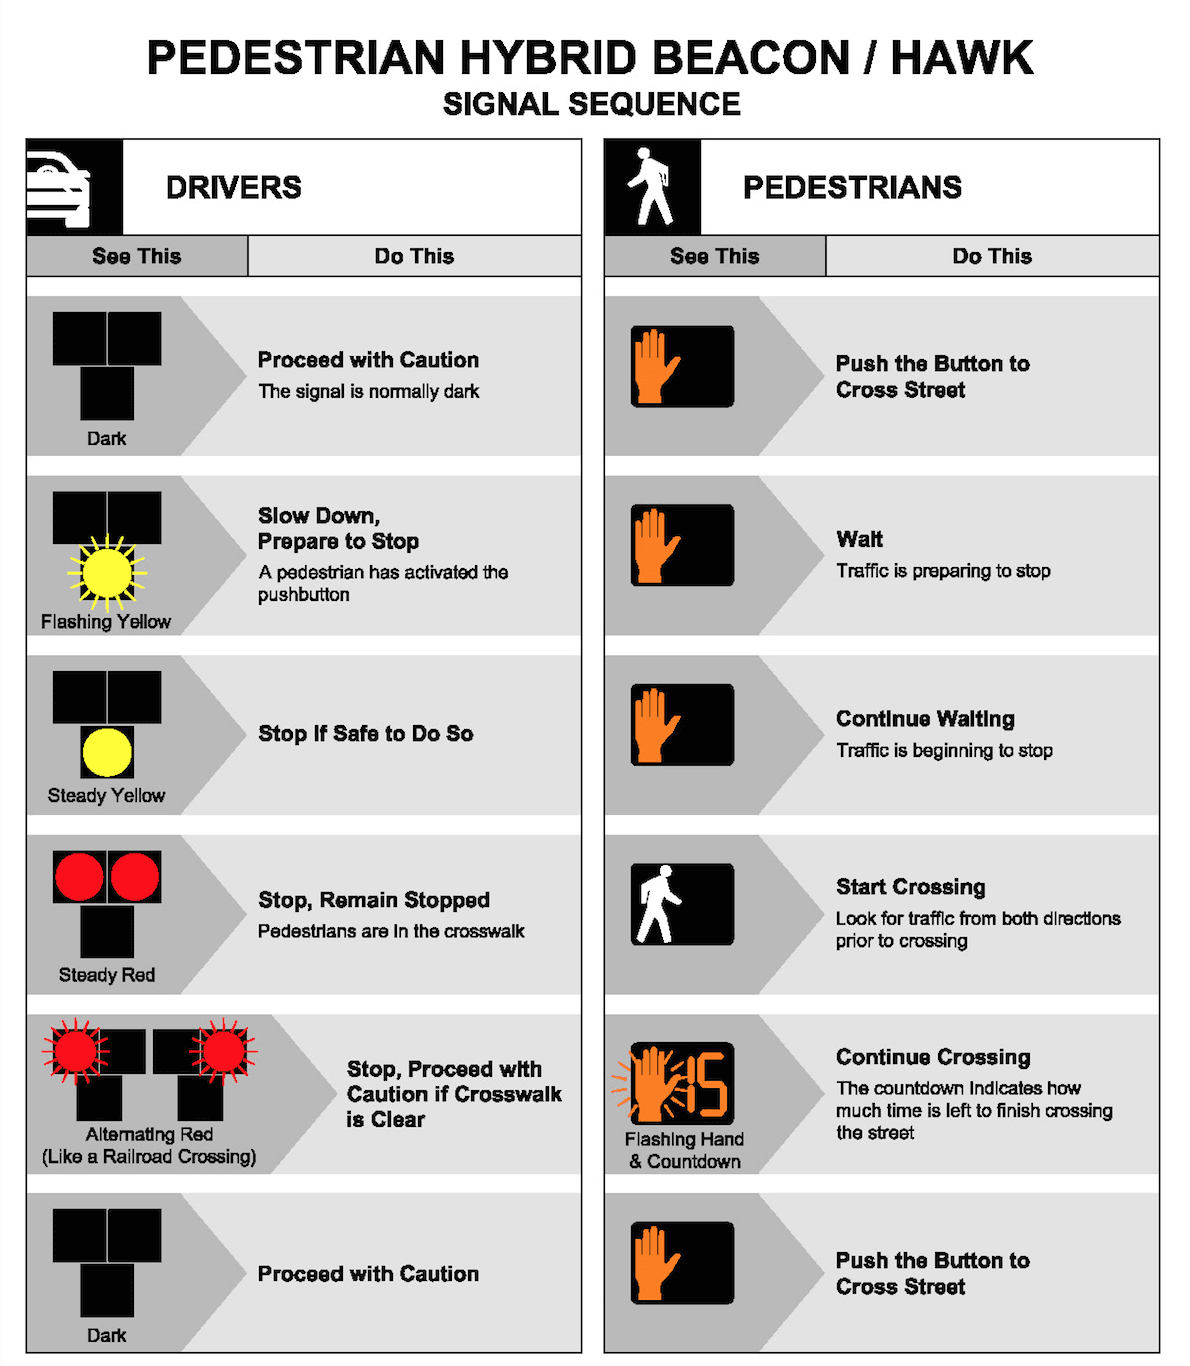 HAWK signal fact sheet